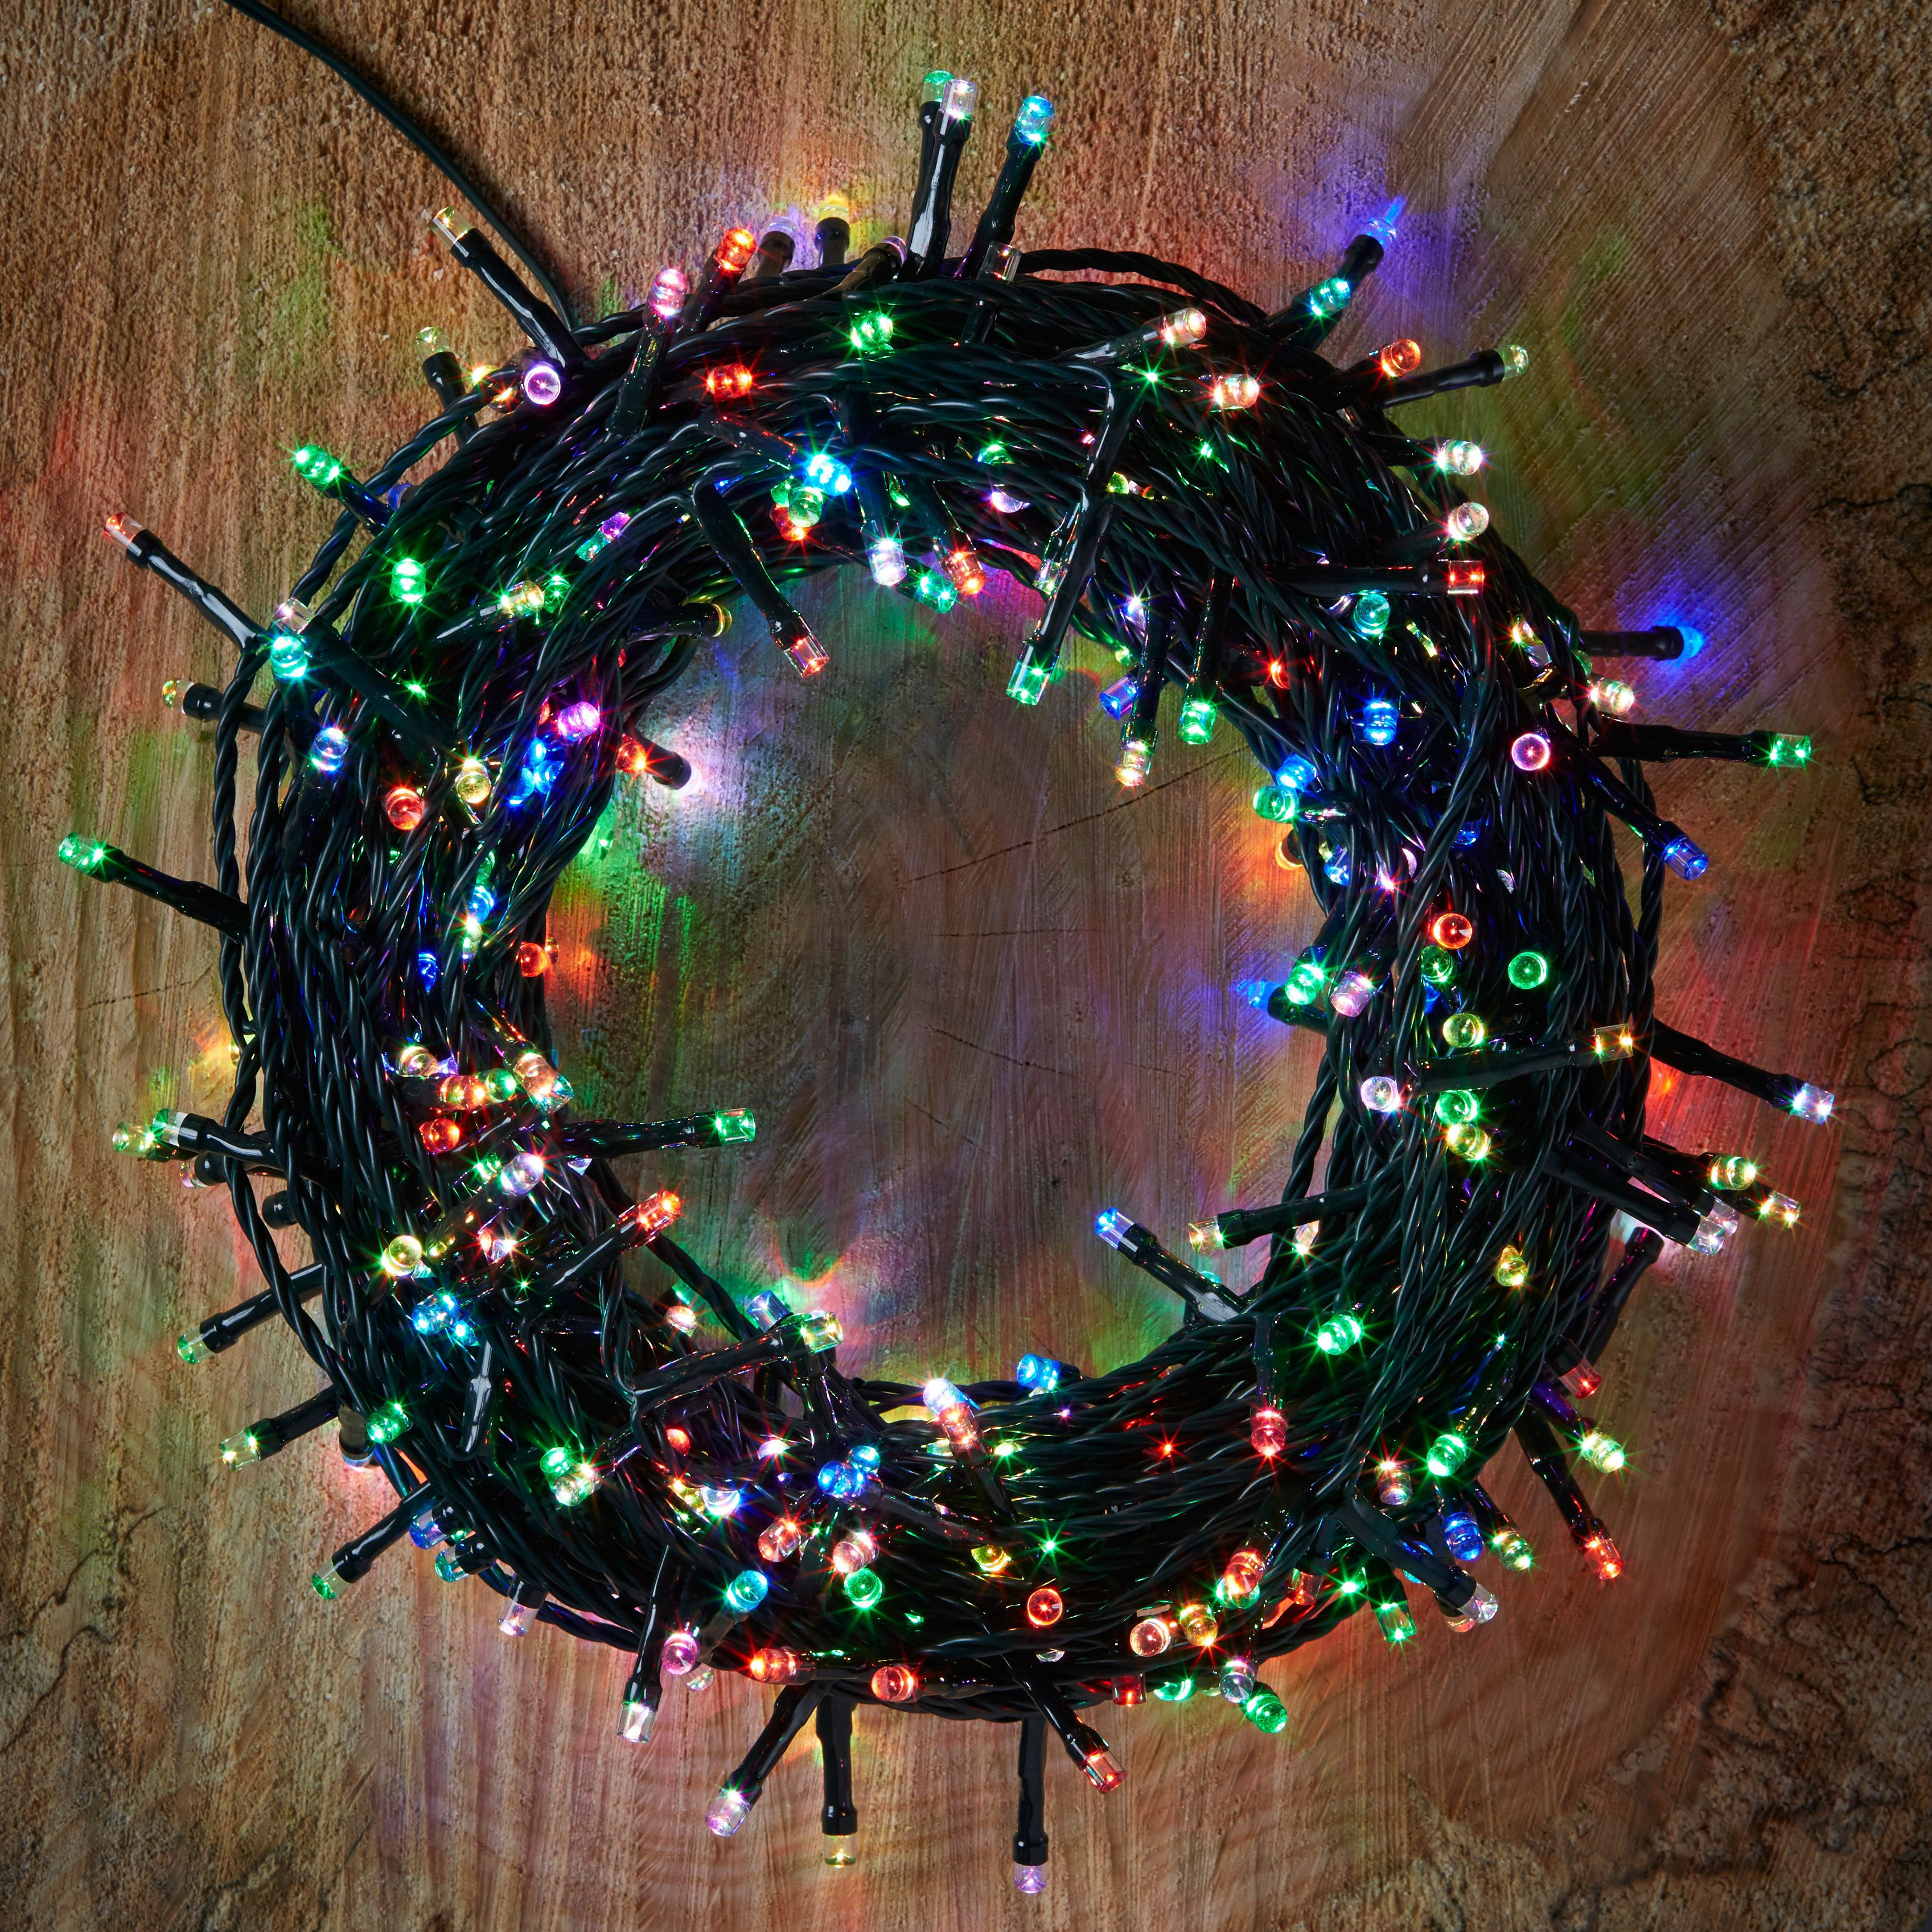 Led String Lights Diy : 400 Colour Changing LED String Lights Departments DIY at B&Q